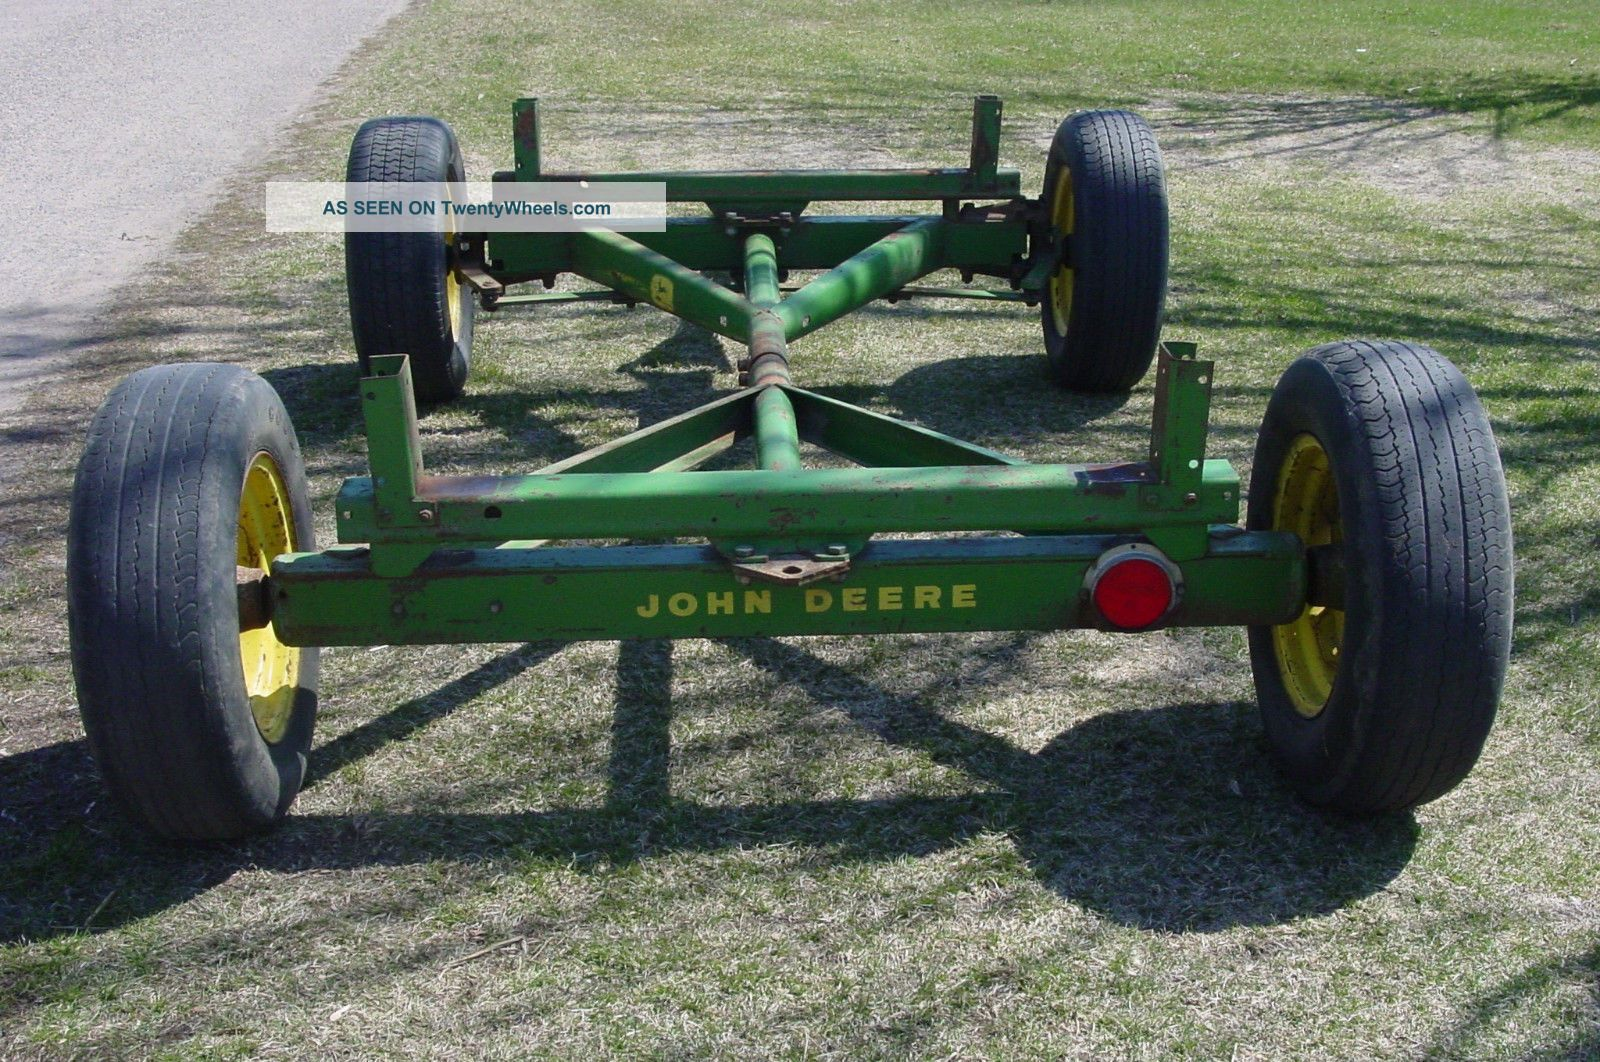 Old Wagon Gears : Old antique vintage john deere tractor wagon running gear